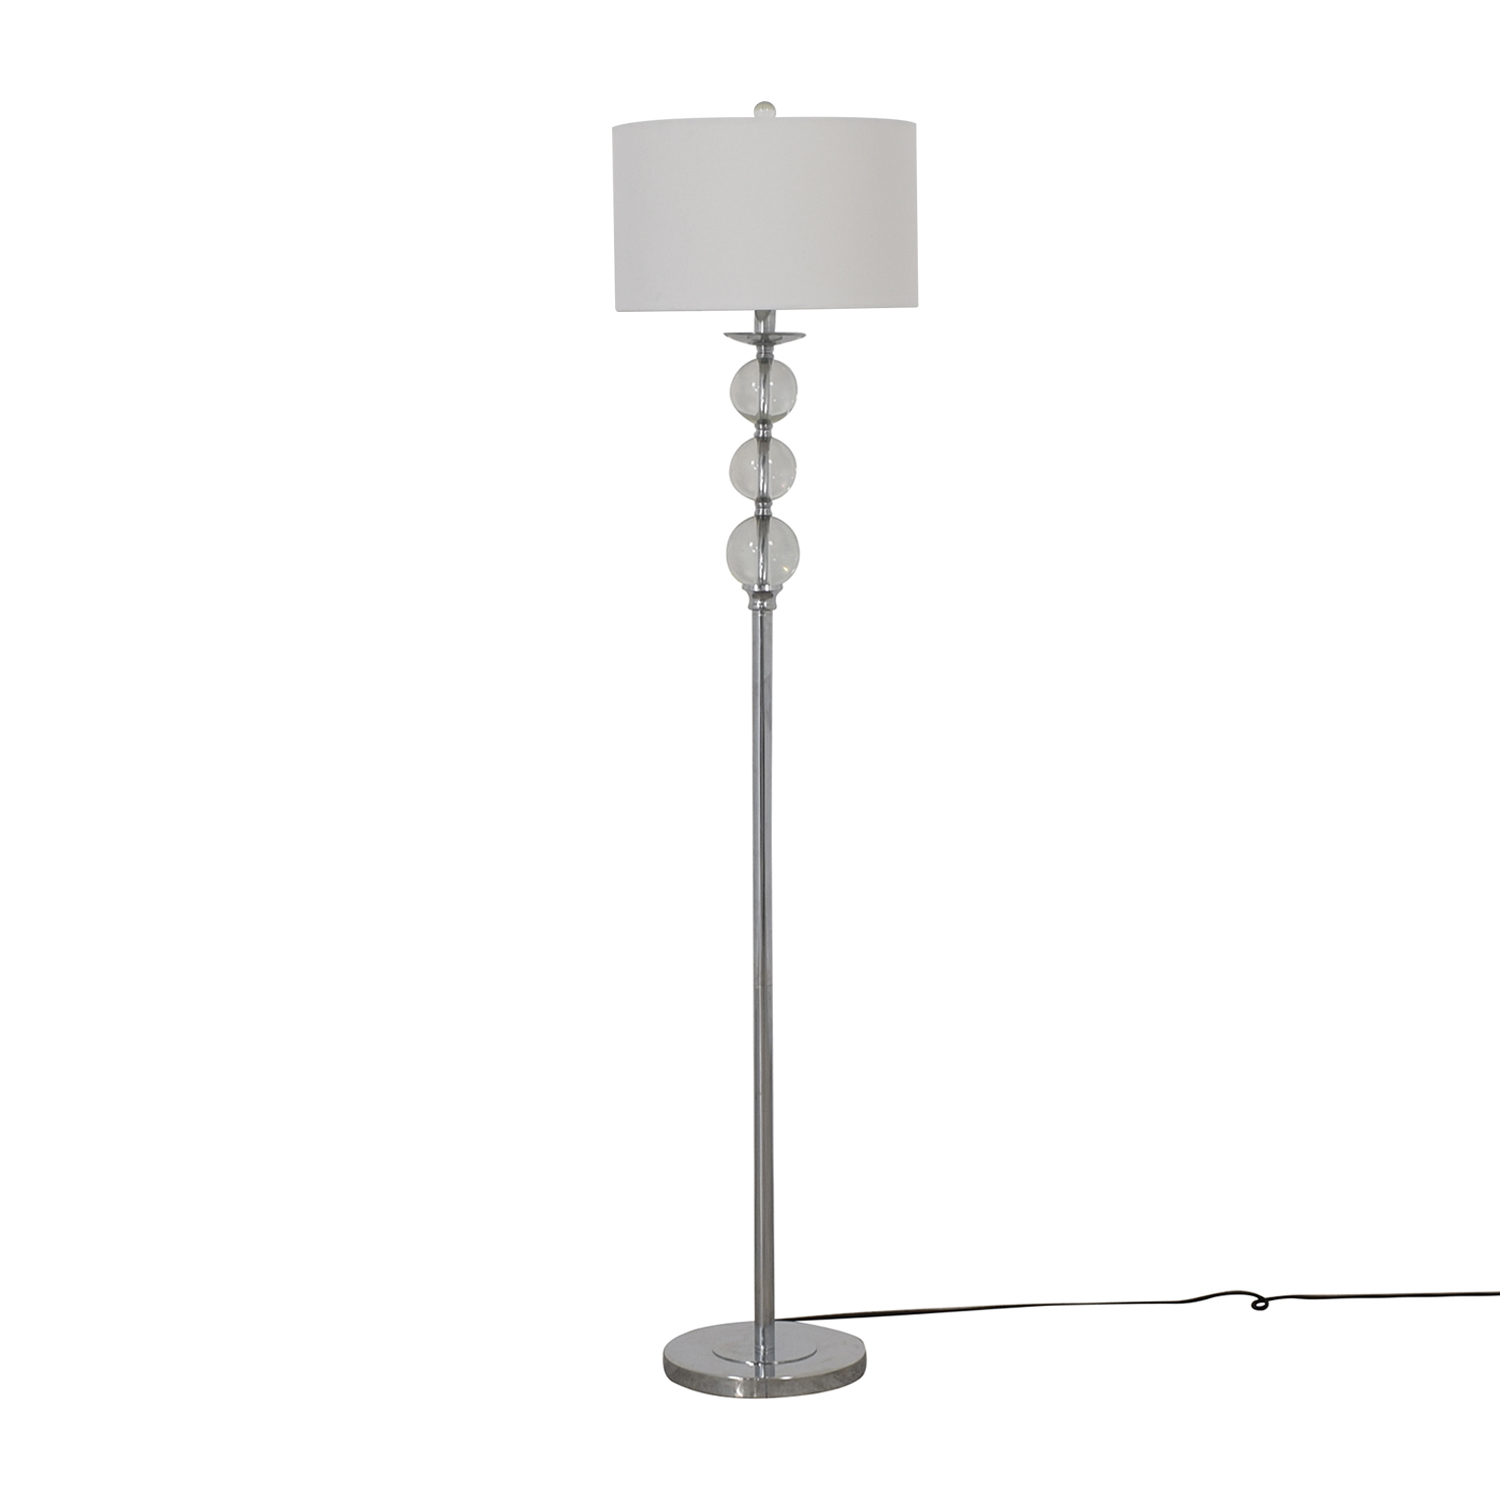 Safavieh Safavieh Friedman Chrome and Glass Floor Lamp on sale